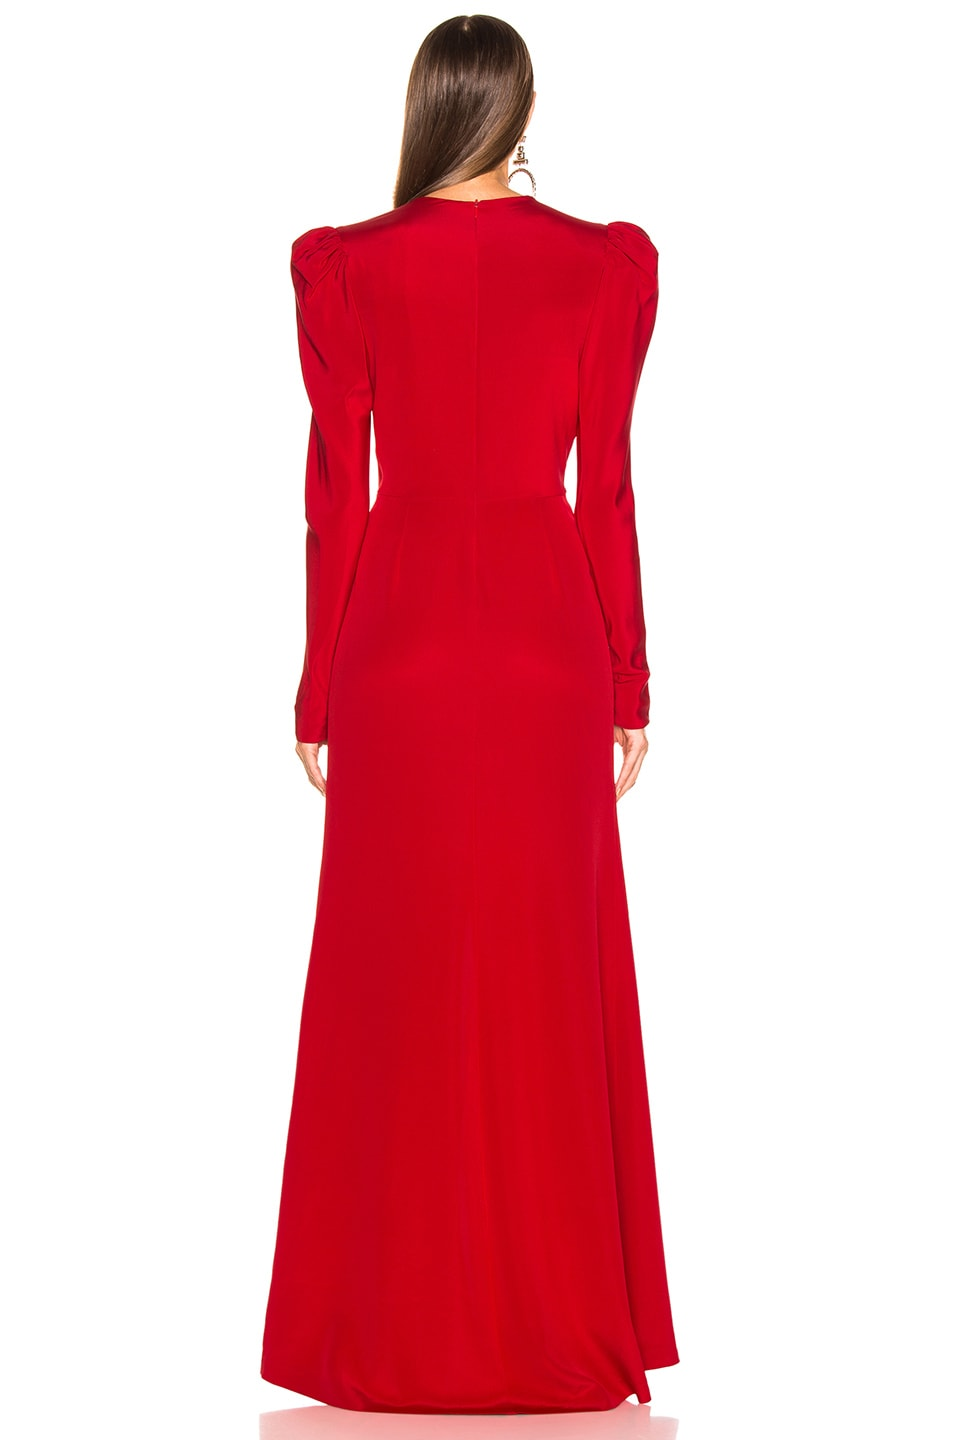 Image 4 of SILVIA TCHERASSI Caeli Dress in Red